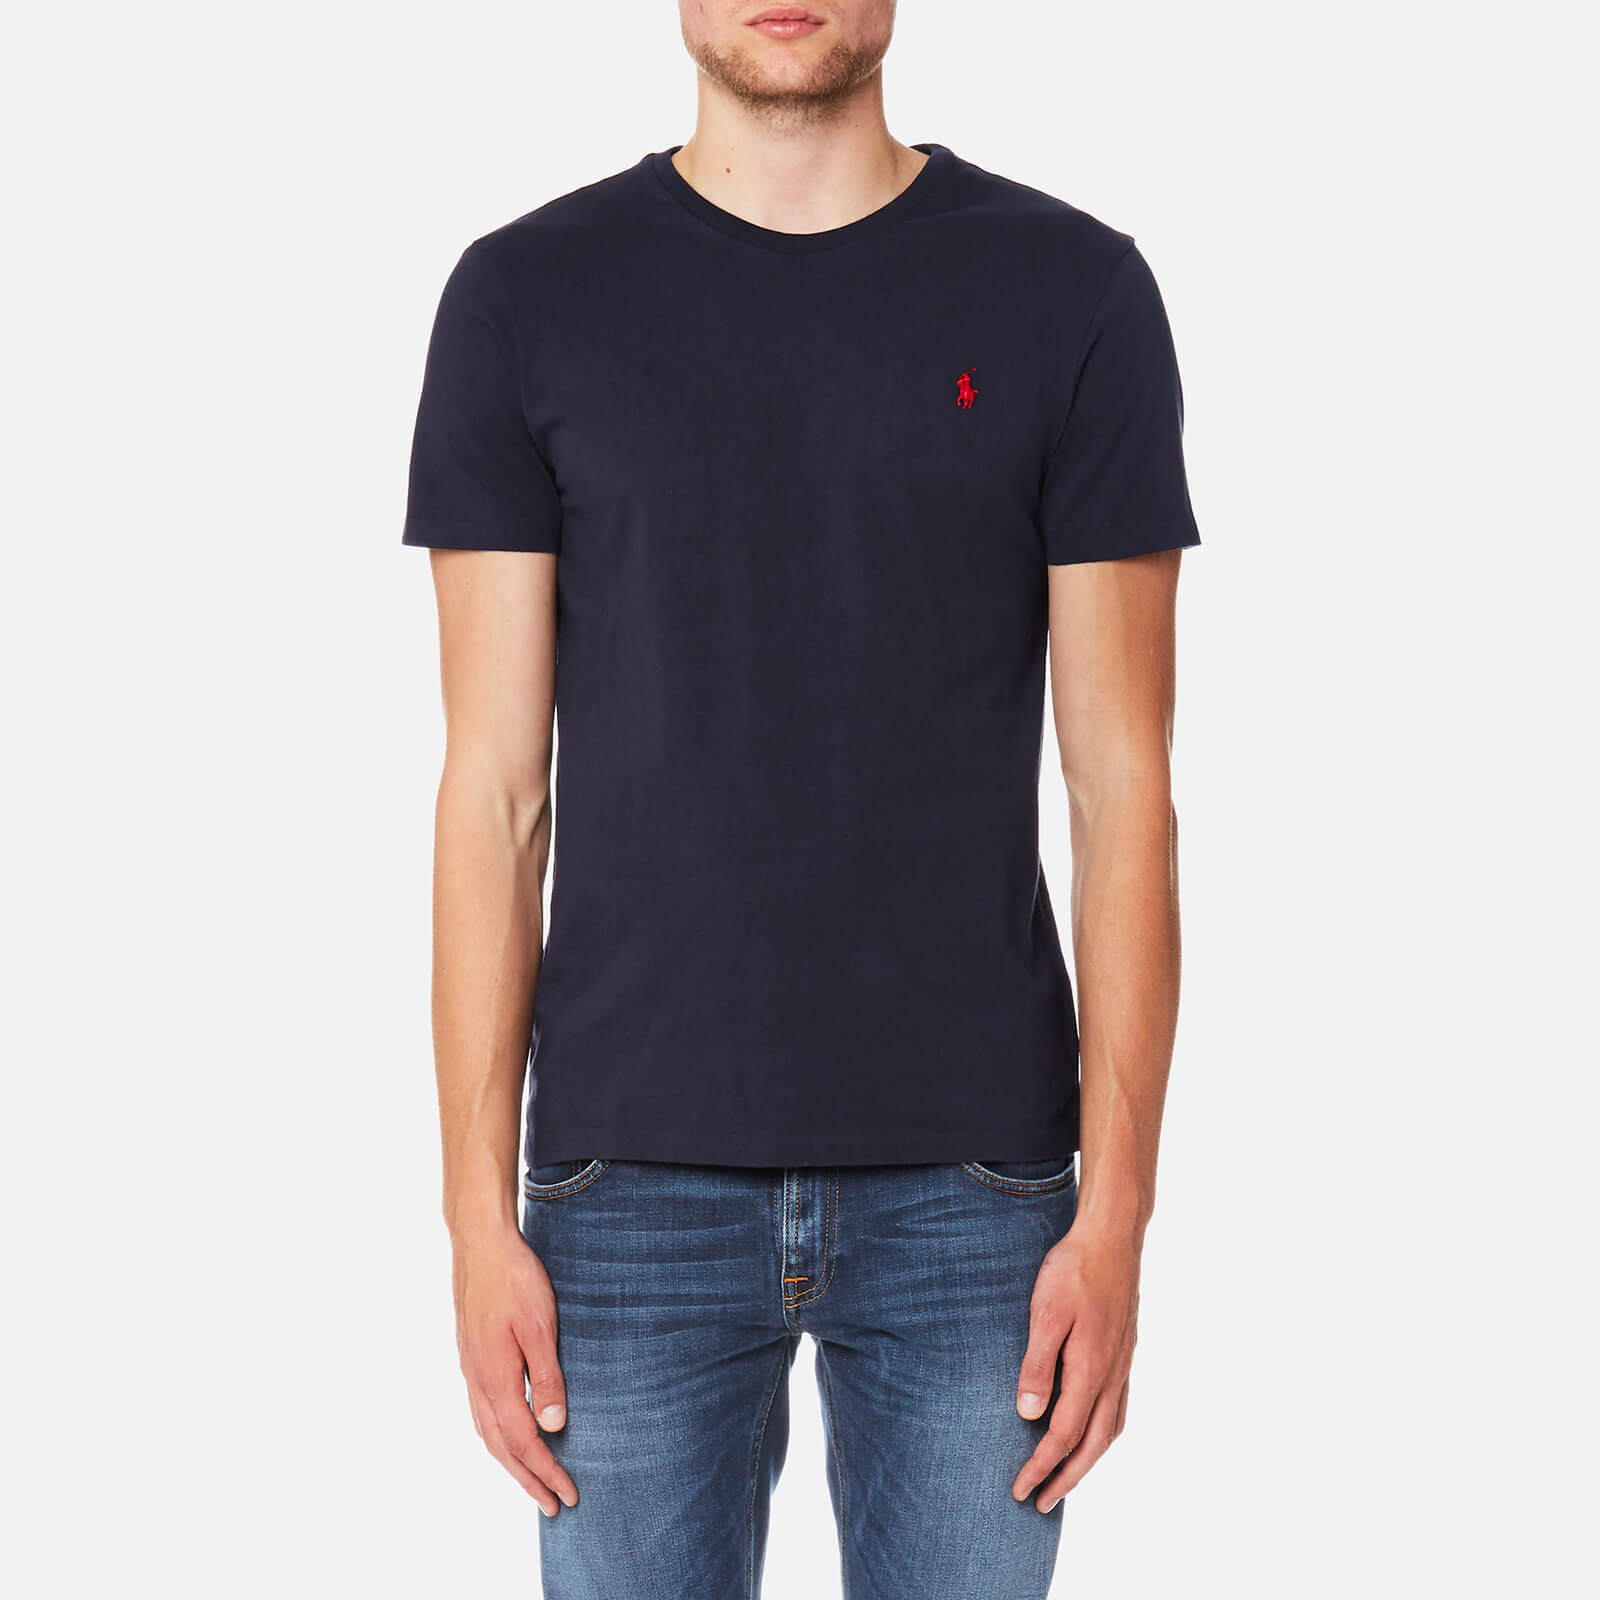 b397a27e Polo Ralph Lauren Men's Custom Fit Crew Neck T-Shirt - Ink - Free UK  Delivery over £50